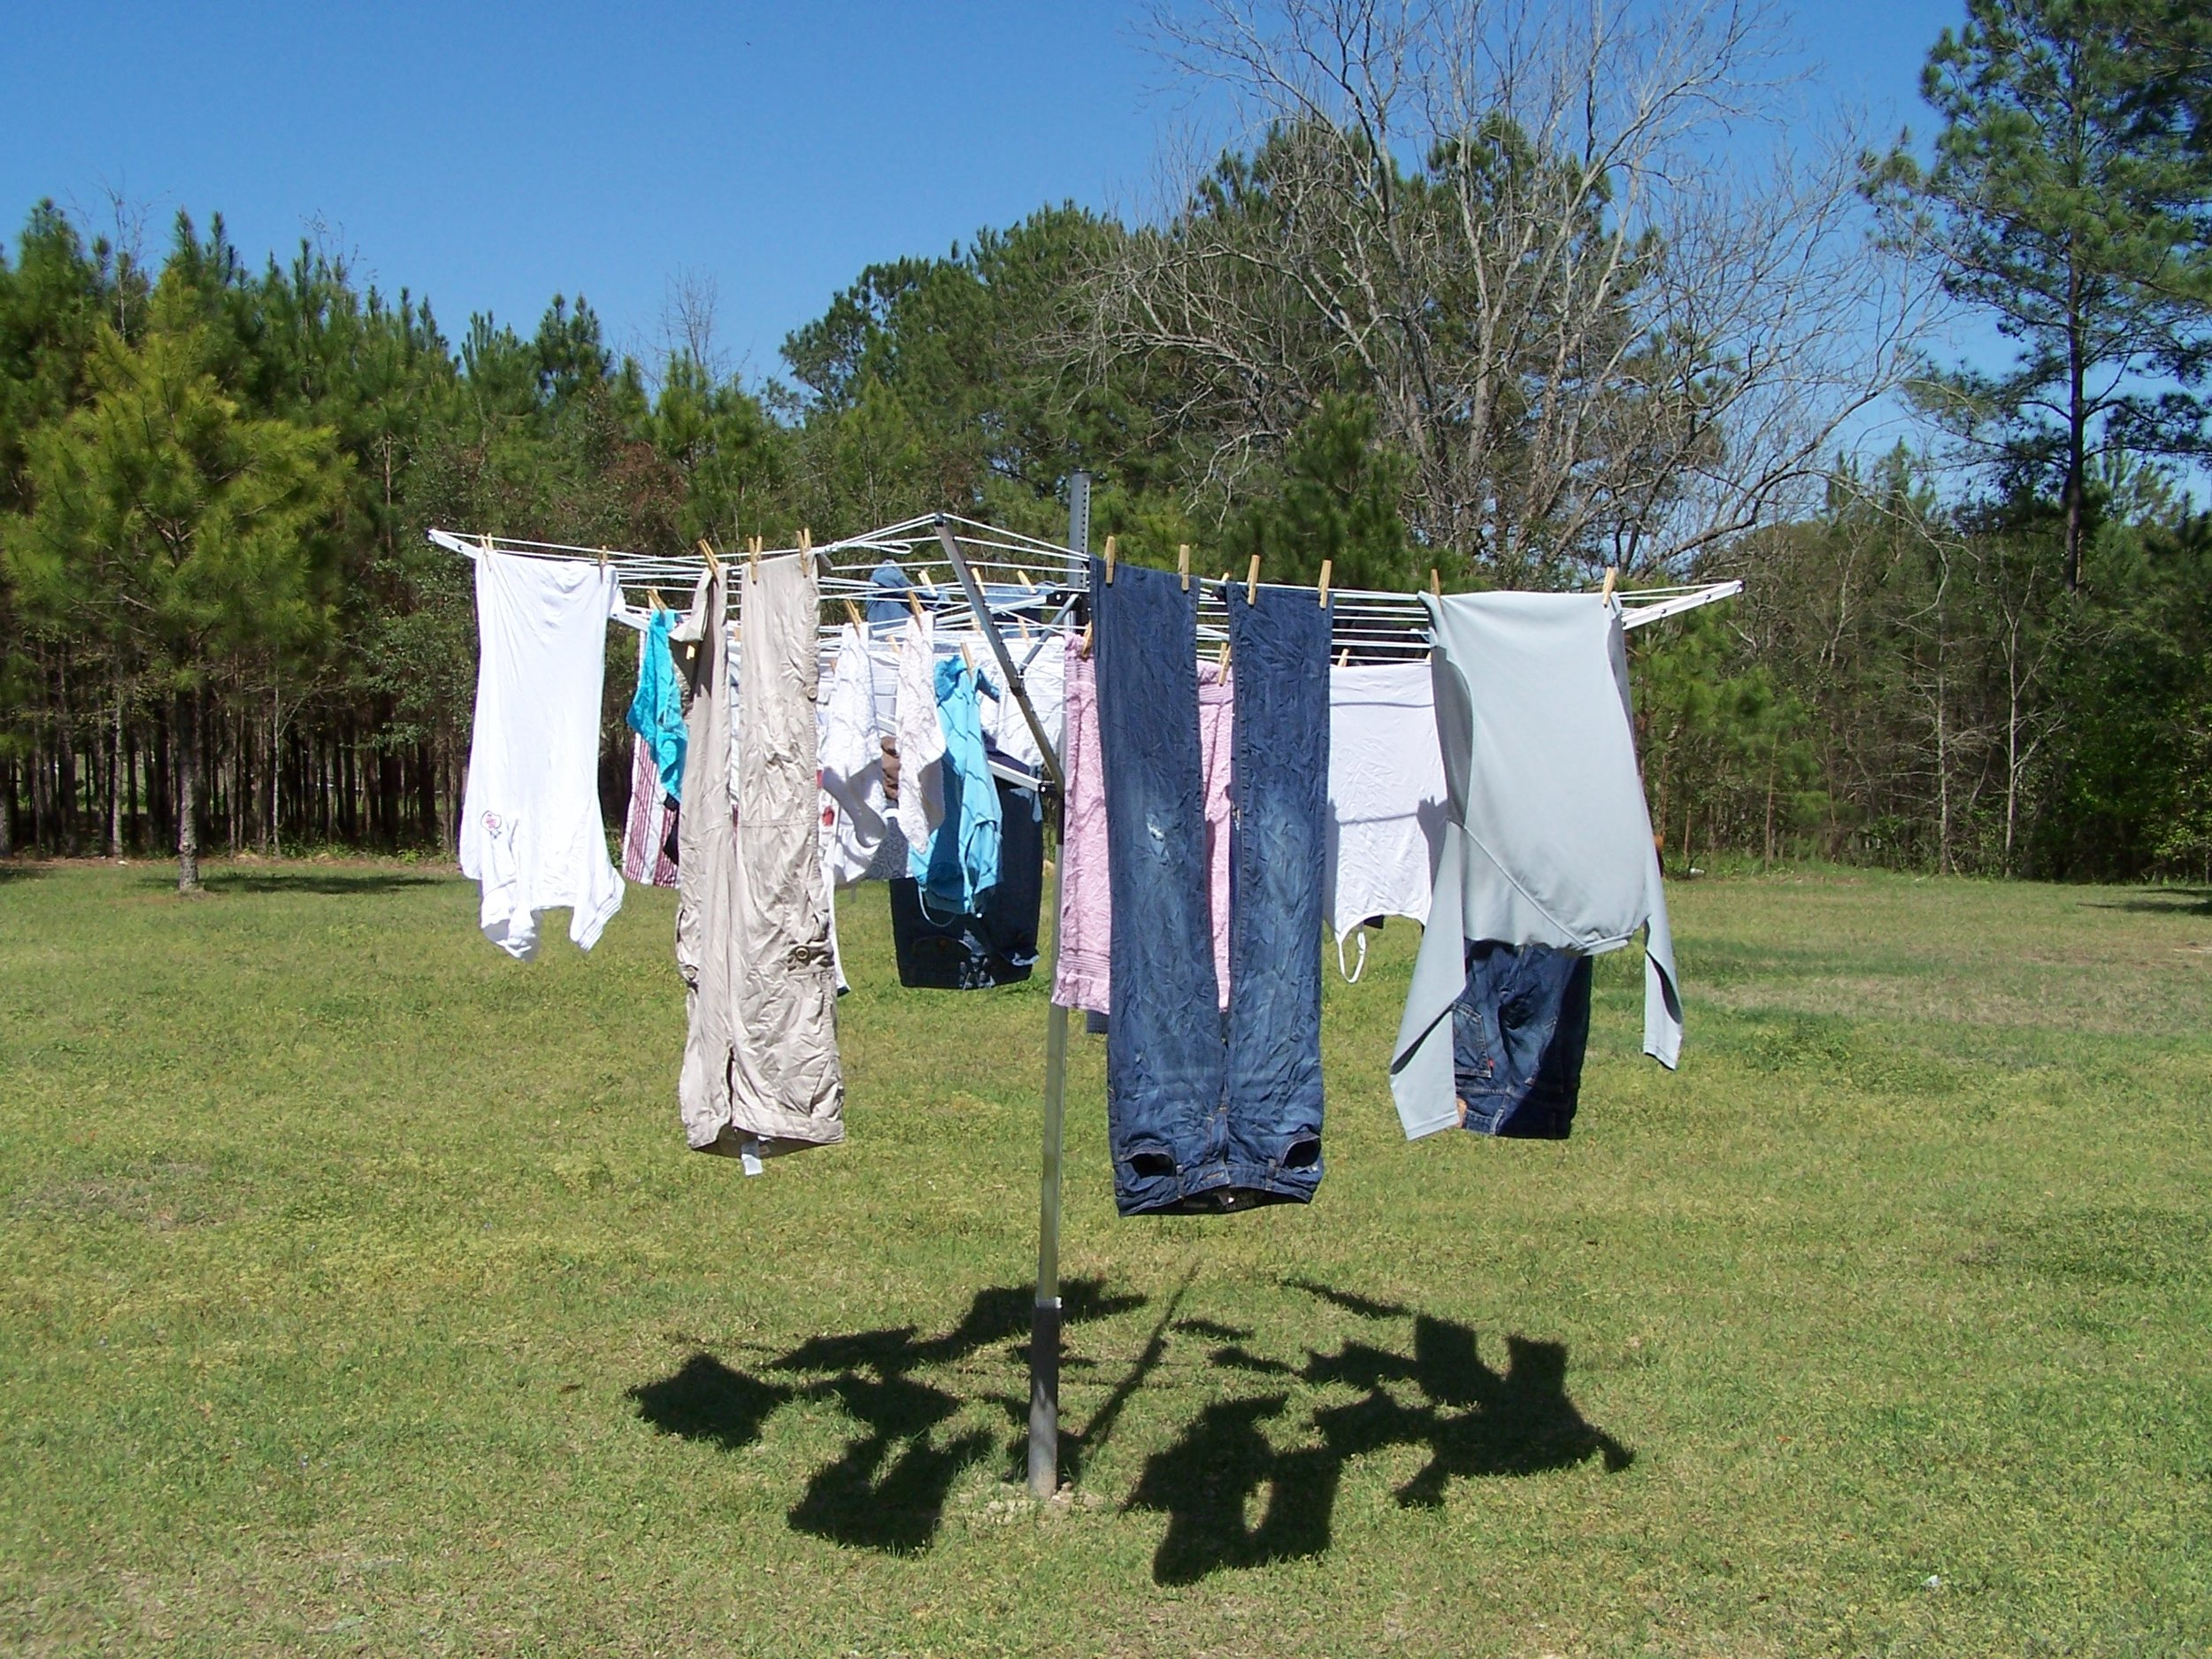 Outdoor Line - Drying clothes in the sun gives them a fresh smell and is usually quick- You must use pegs to ensure items do not fall off- Do not overlap items- Pin at the edge of clothes, not in the middle